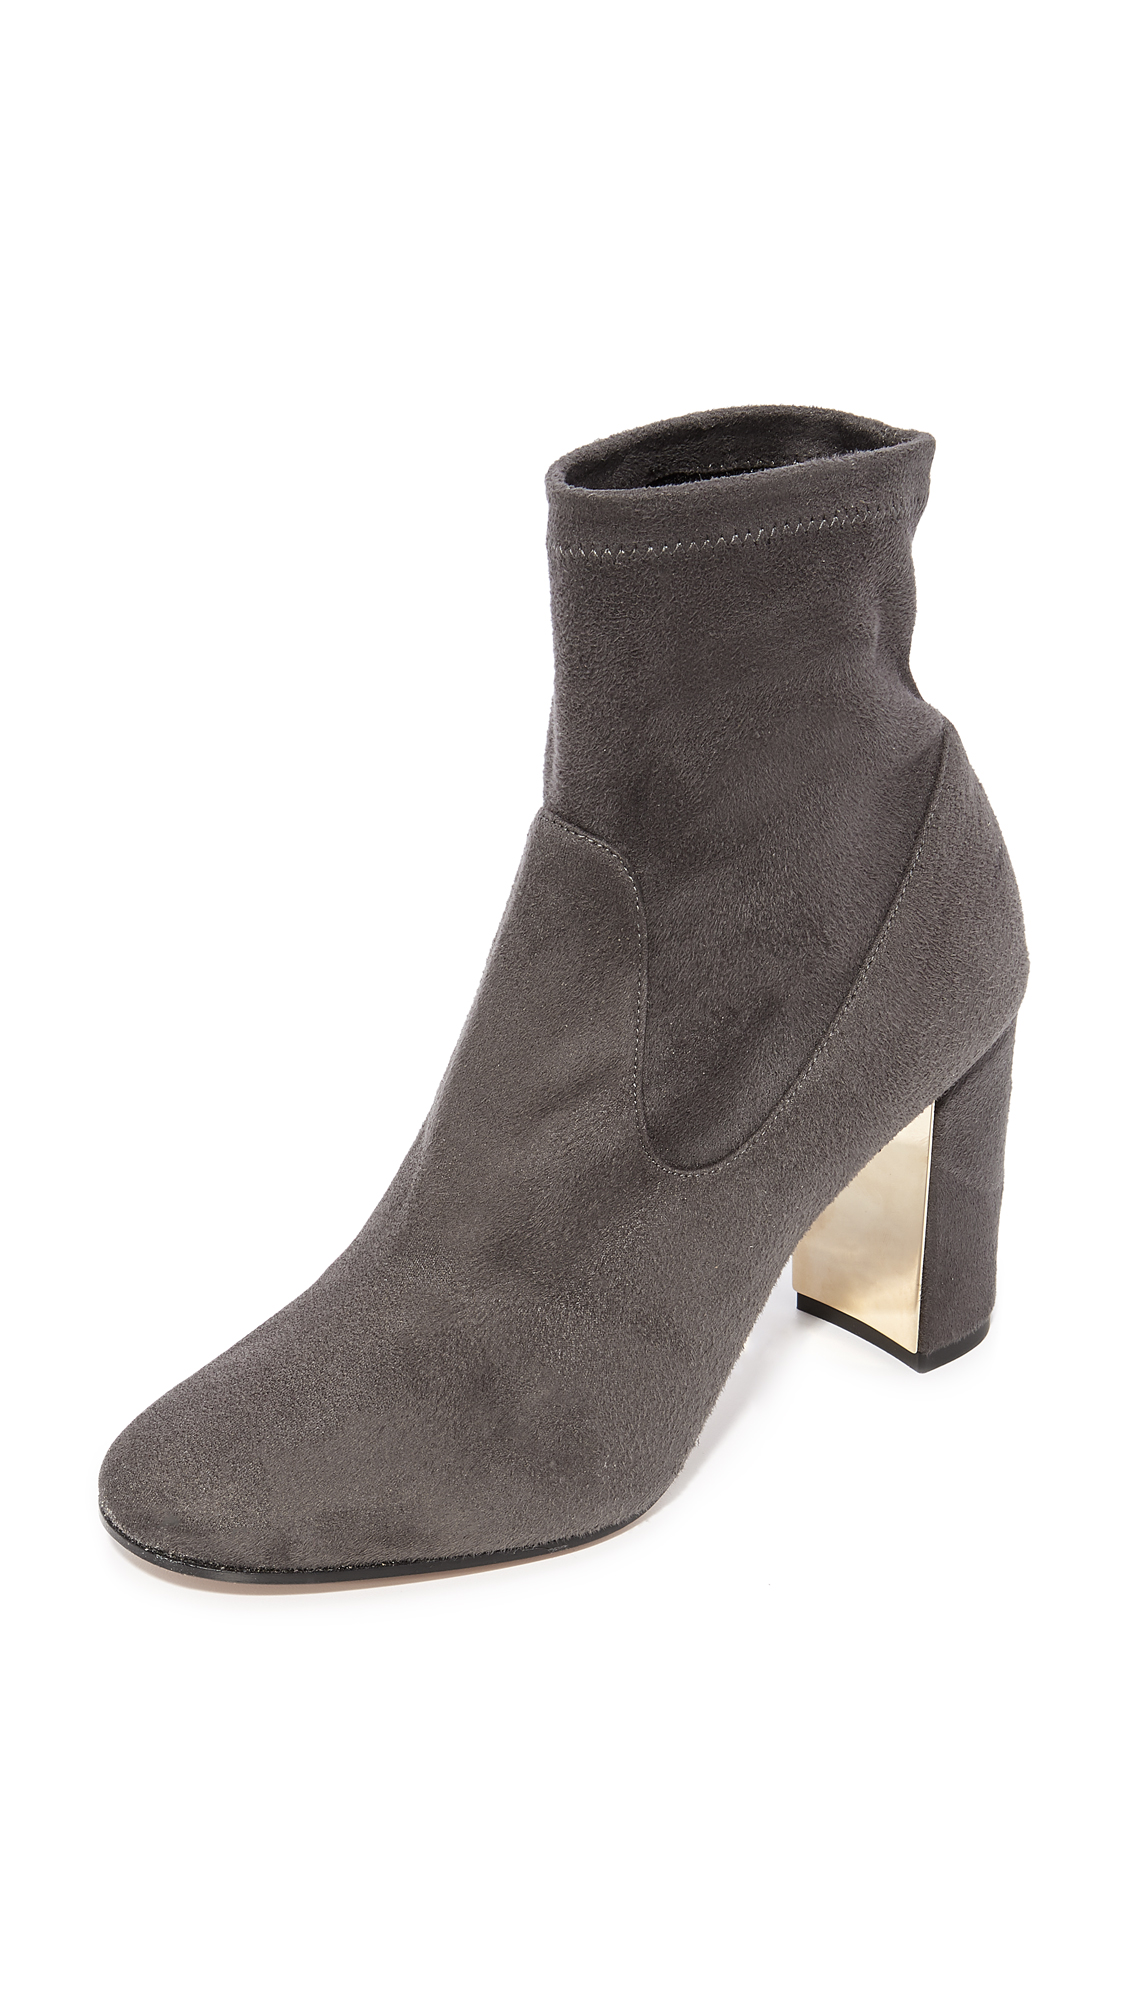 Marion Parke Kate Booties - Smoke